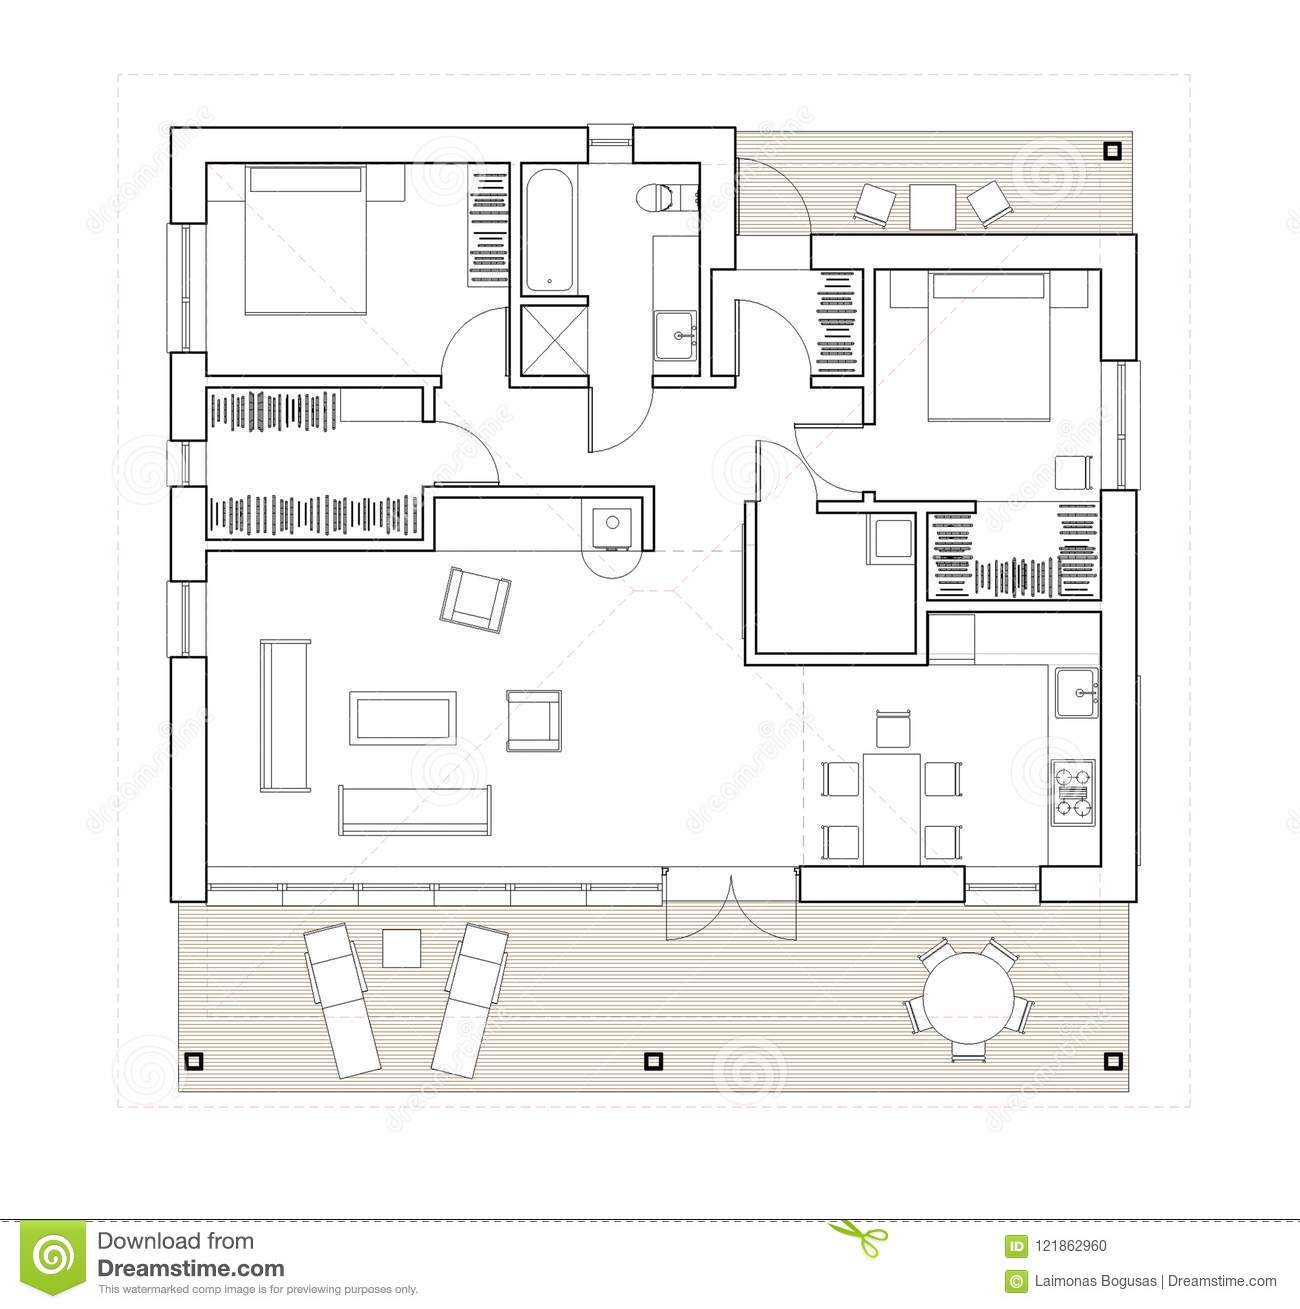 Drawing - Isolated Floor Plan Of The Single Family House